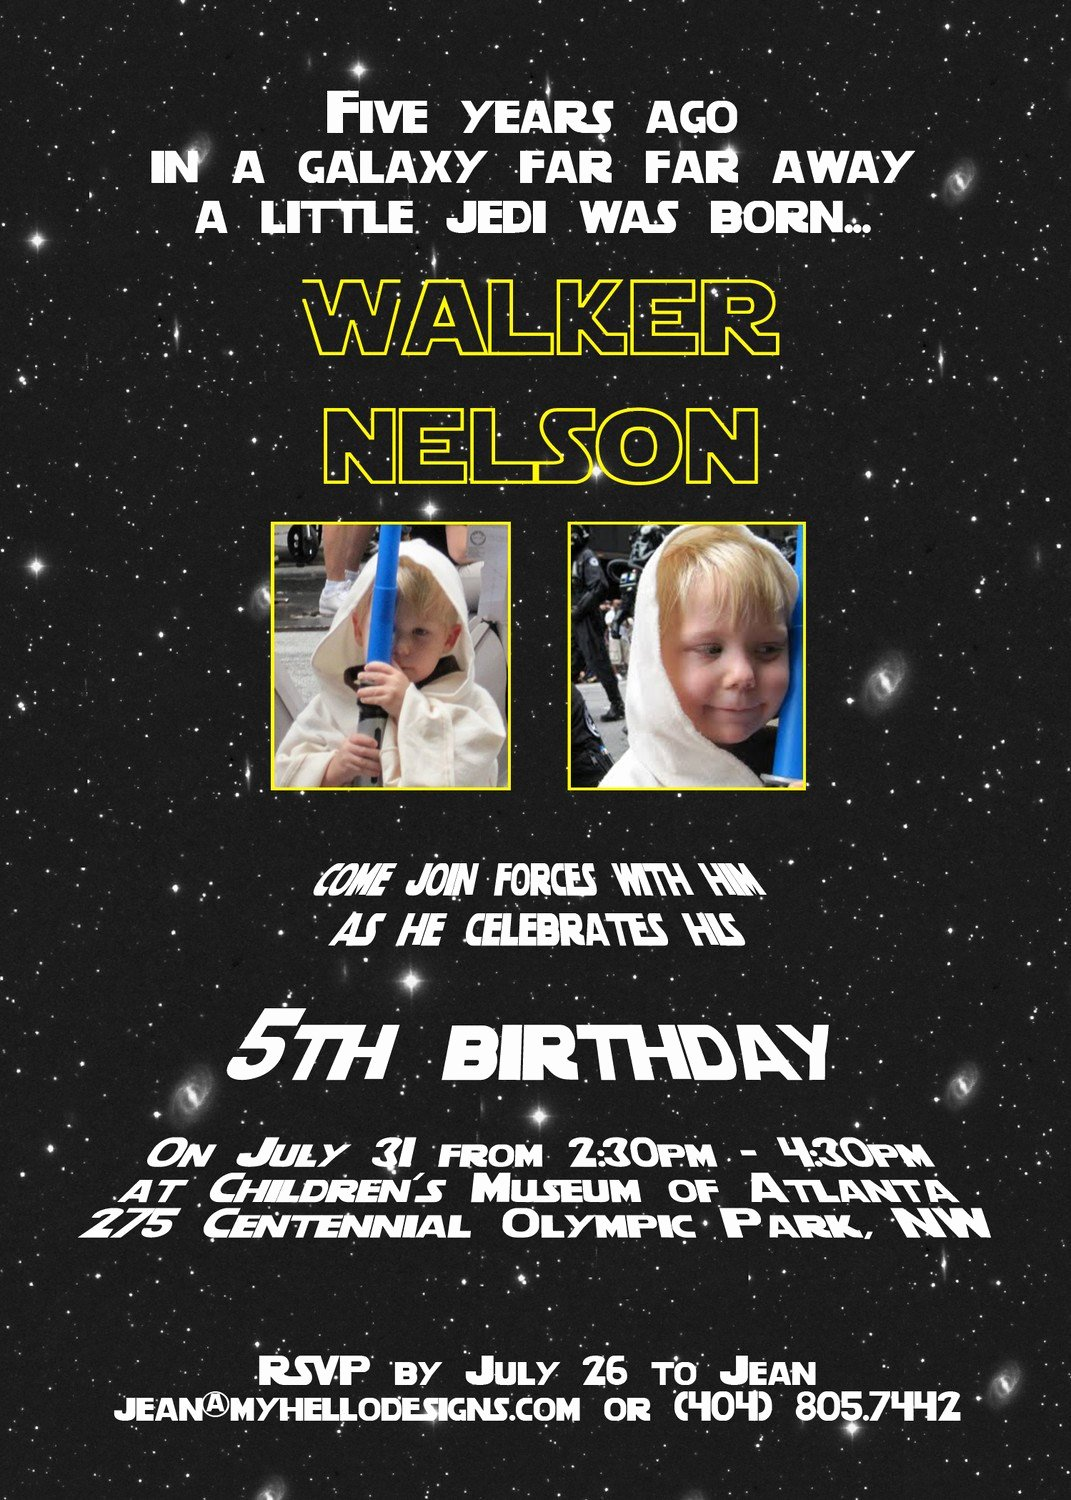 Star Wars Birthday Party Invitation Fresh Printable Star Wars Inspired Invitation Jedi by Myhellodesigns